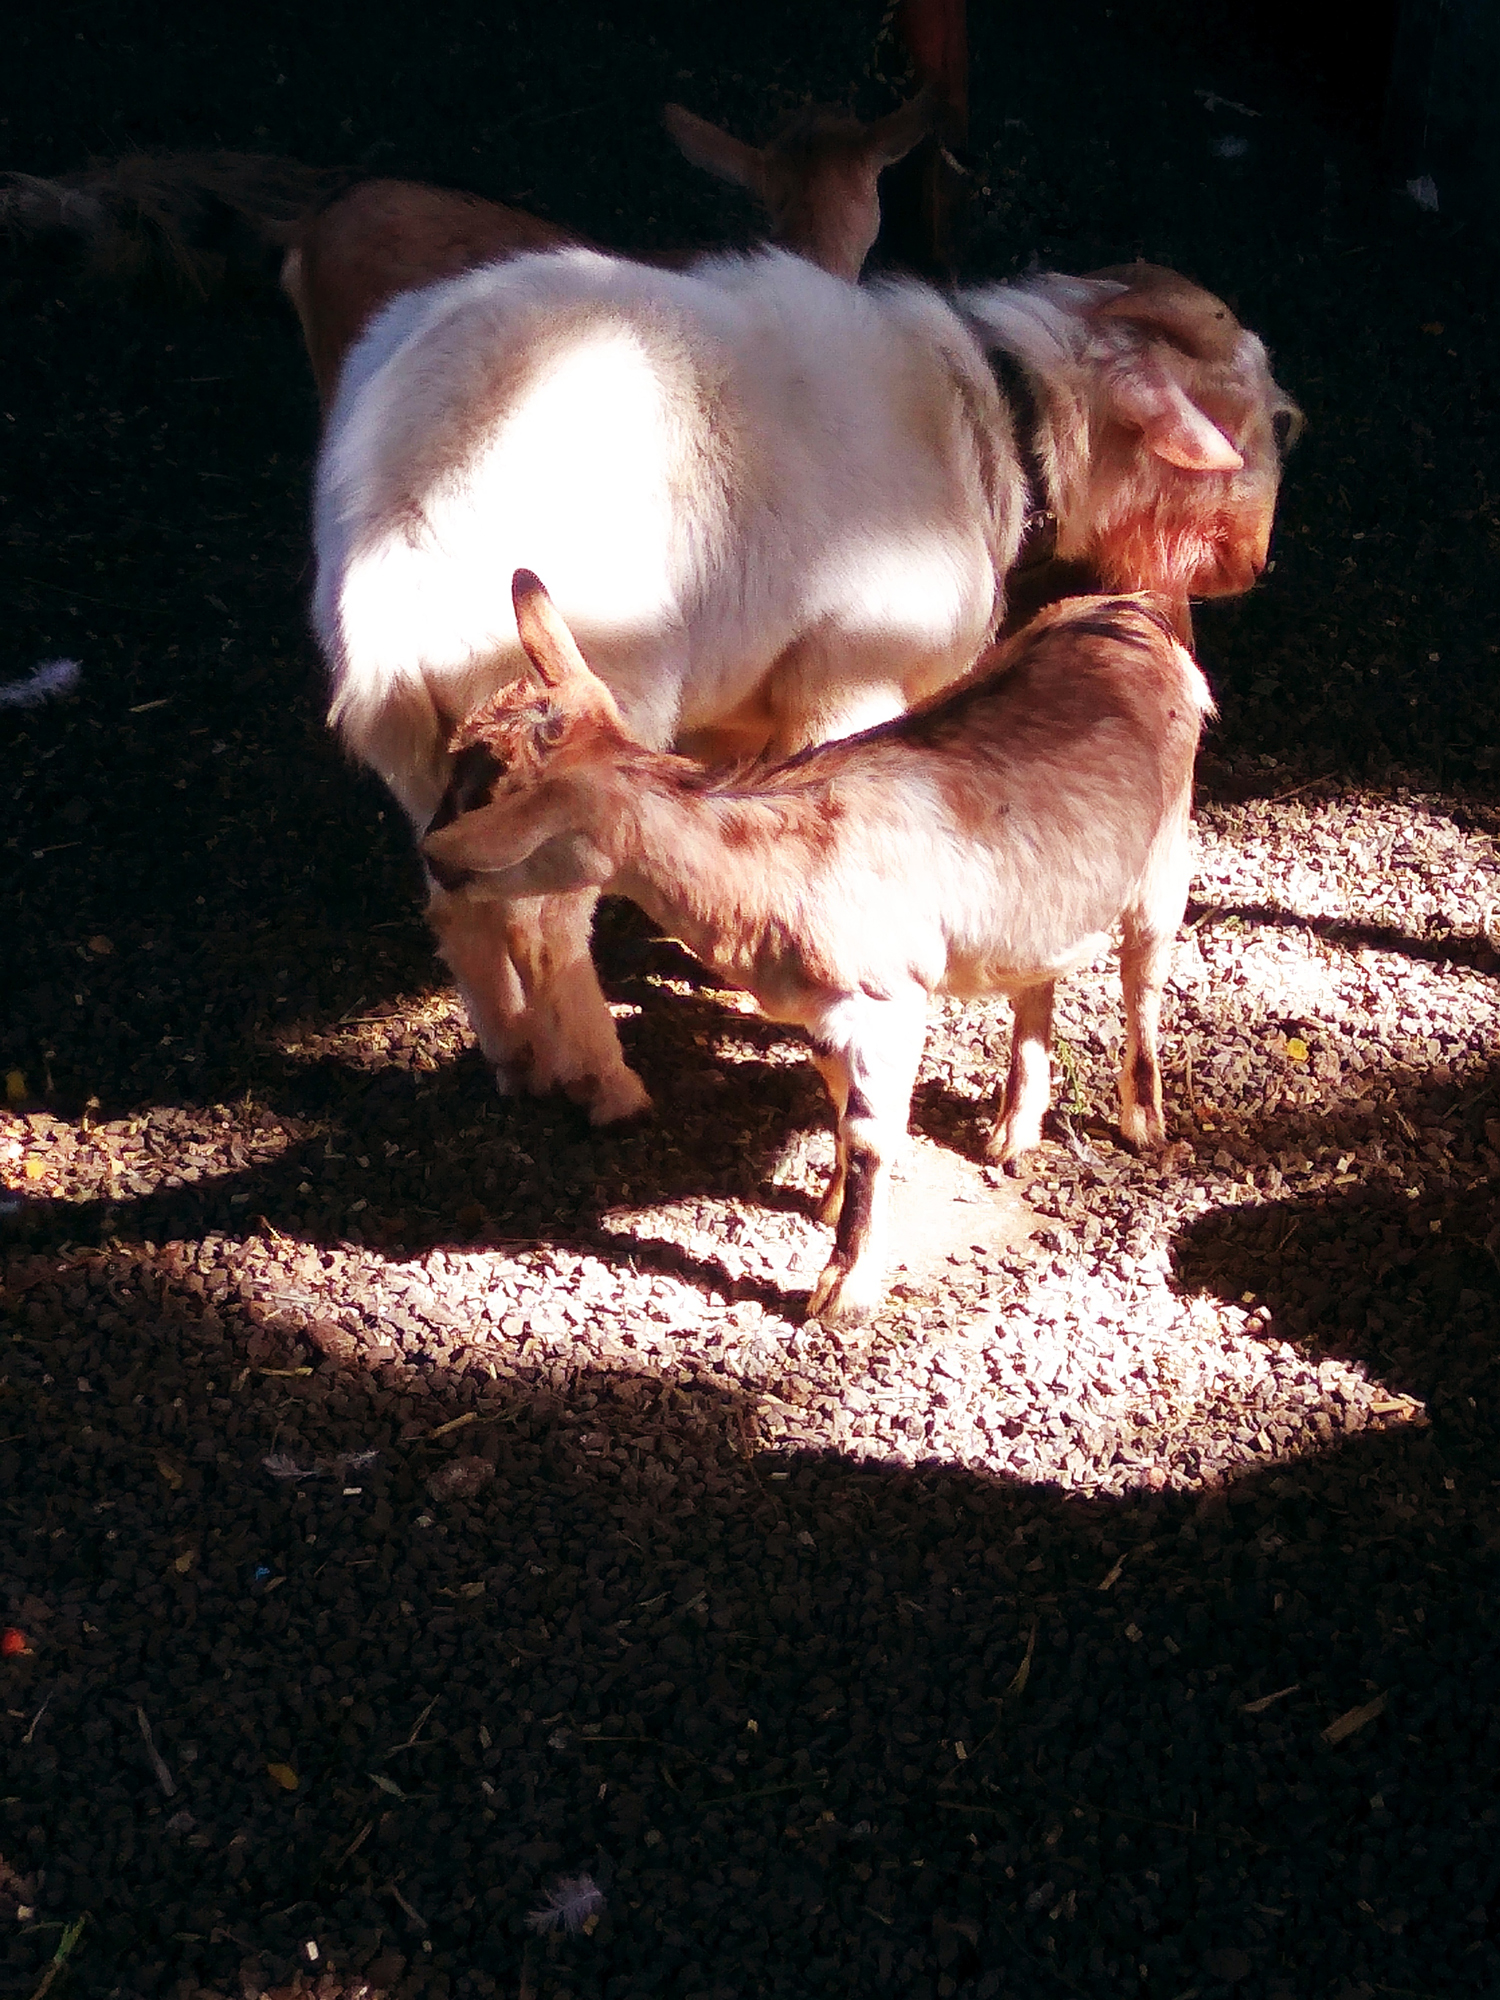 sunlight and shadow comes together to show the intimate love between the mother and the lamb